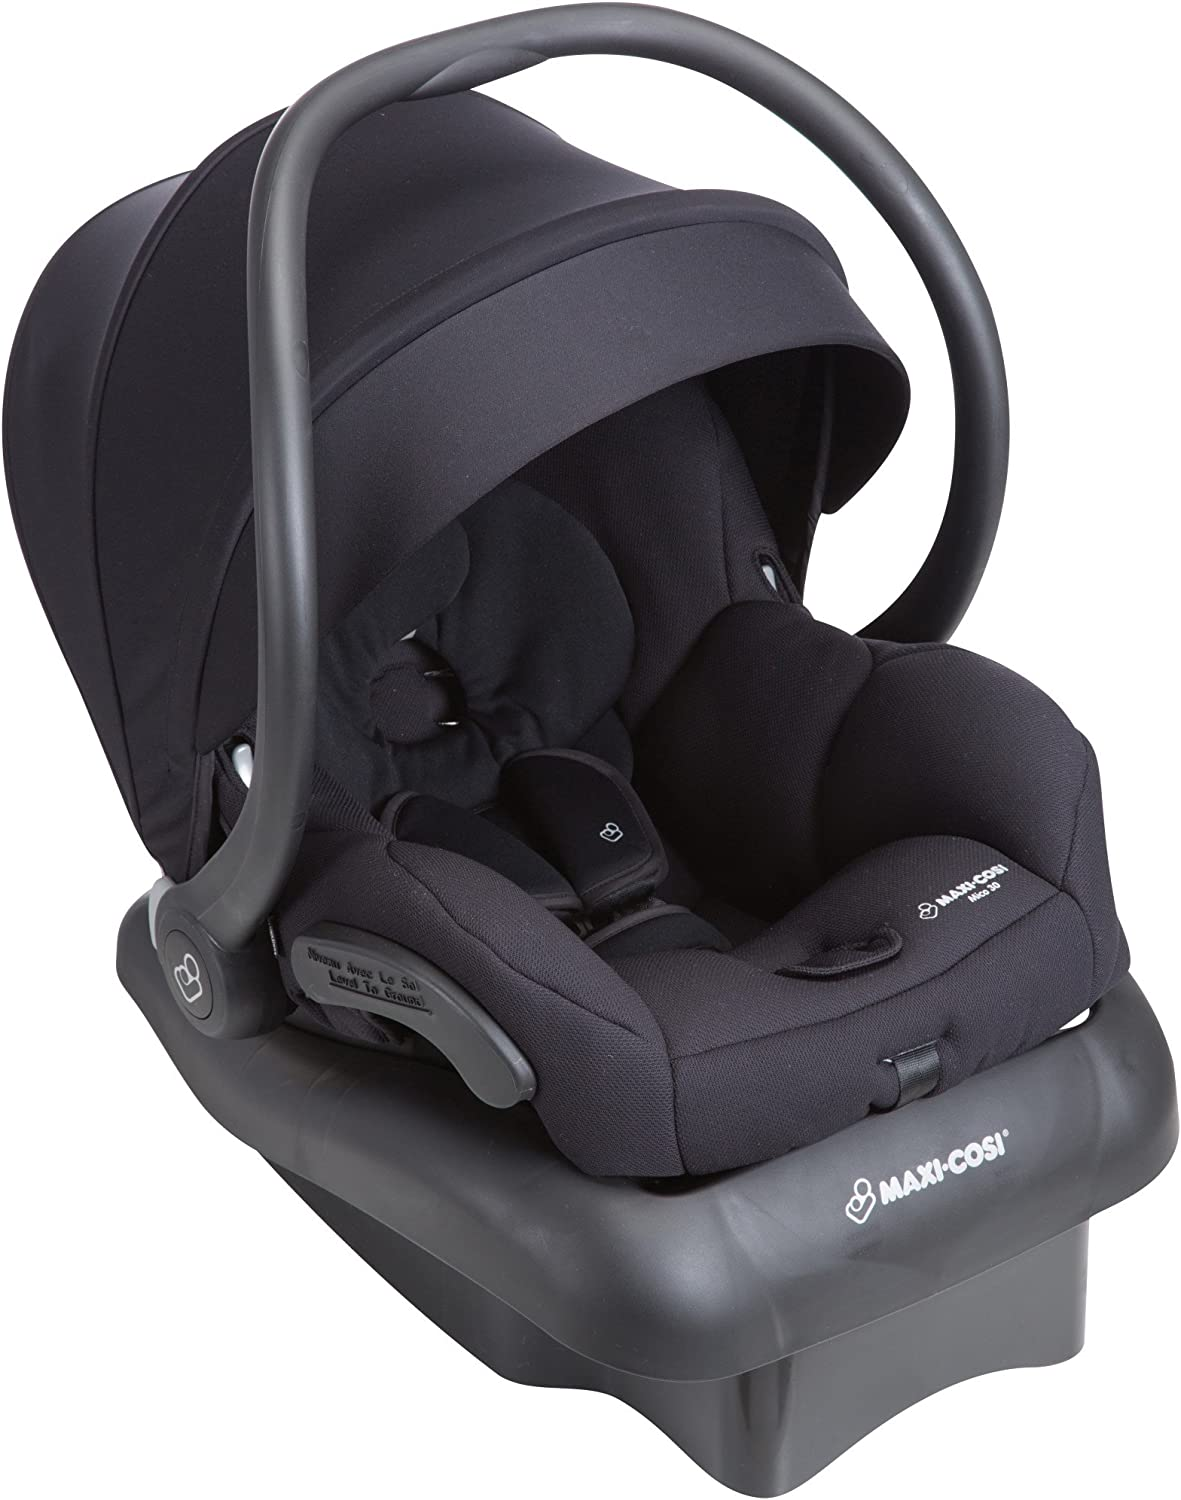 Maxi-Cosi Mico 30 Infant Baby Car Seat with Base Night Black 5-30 lbs NEW